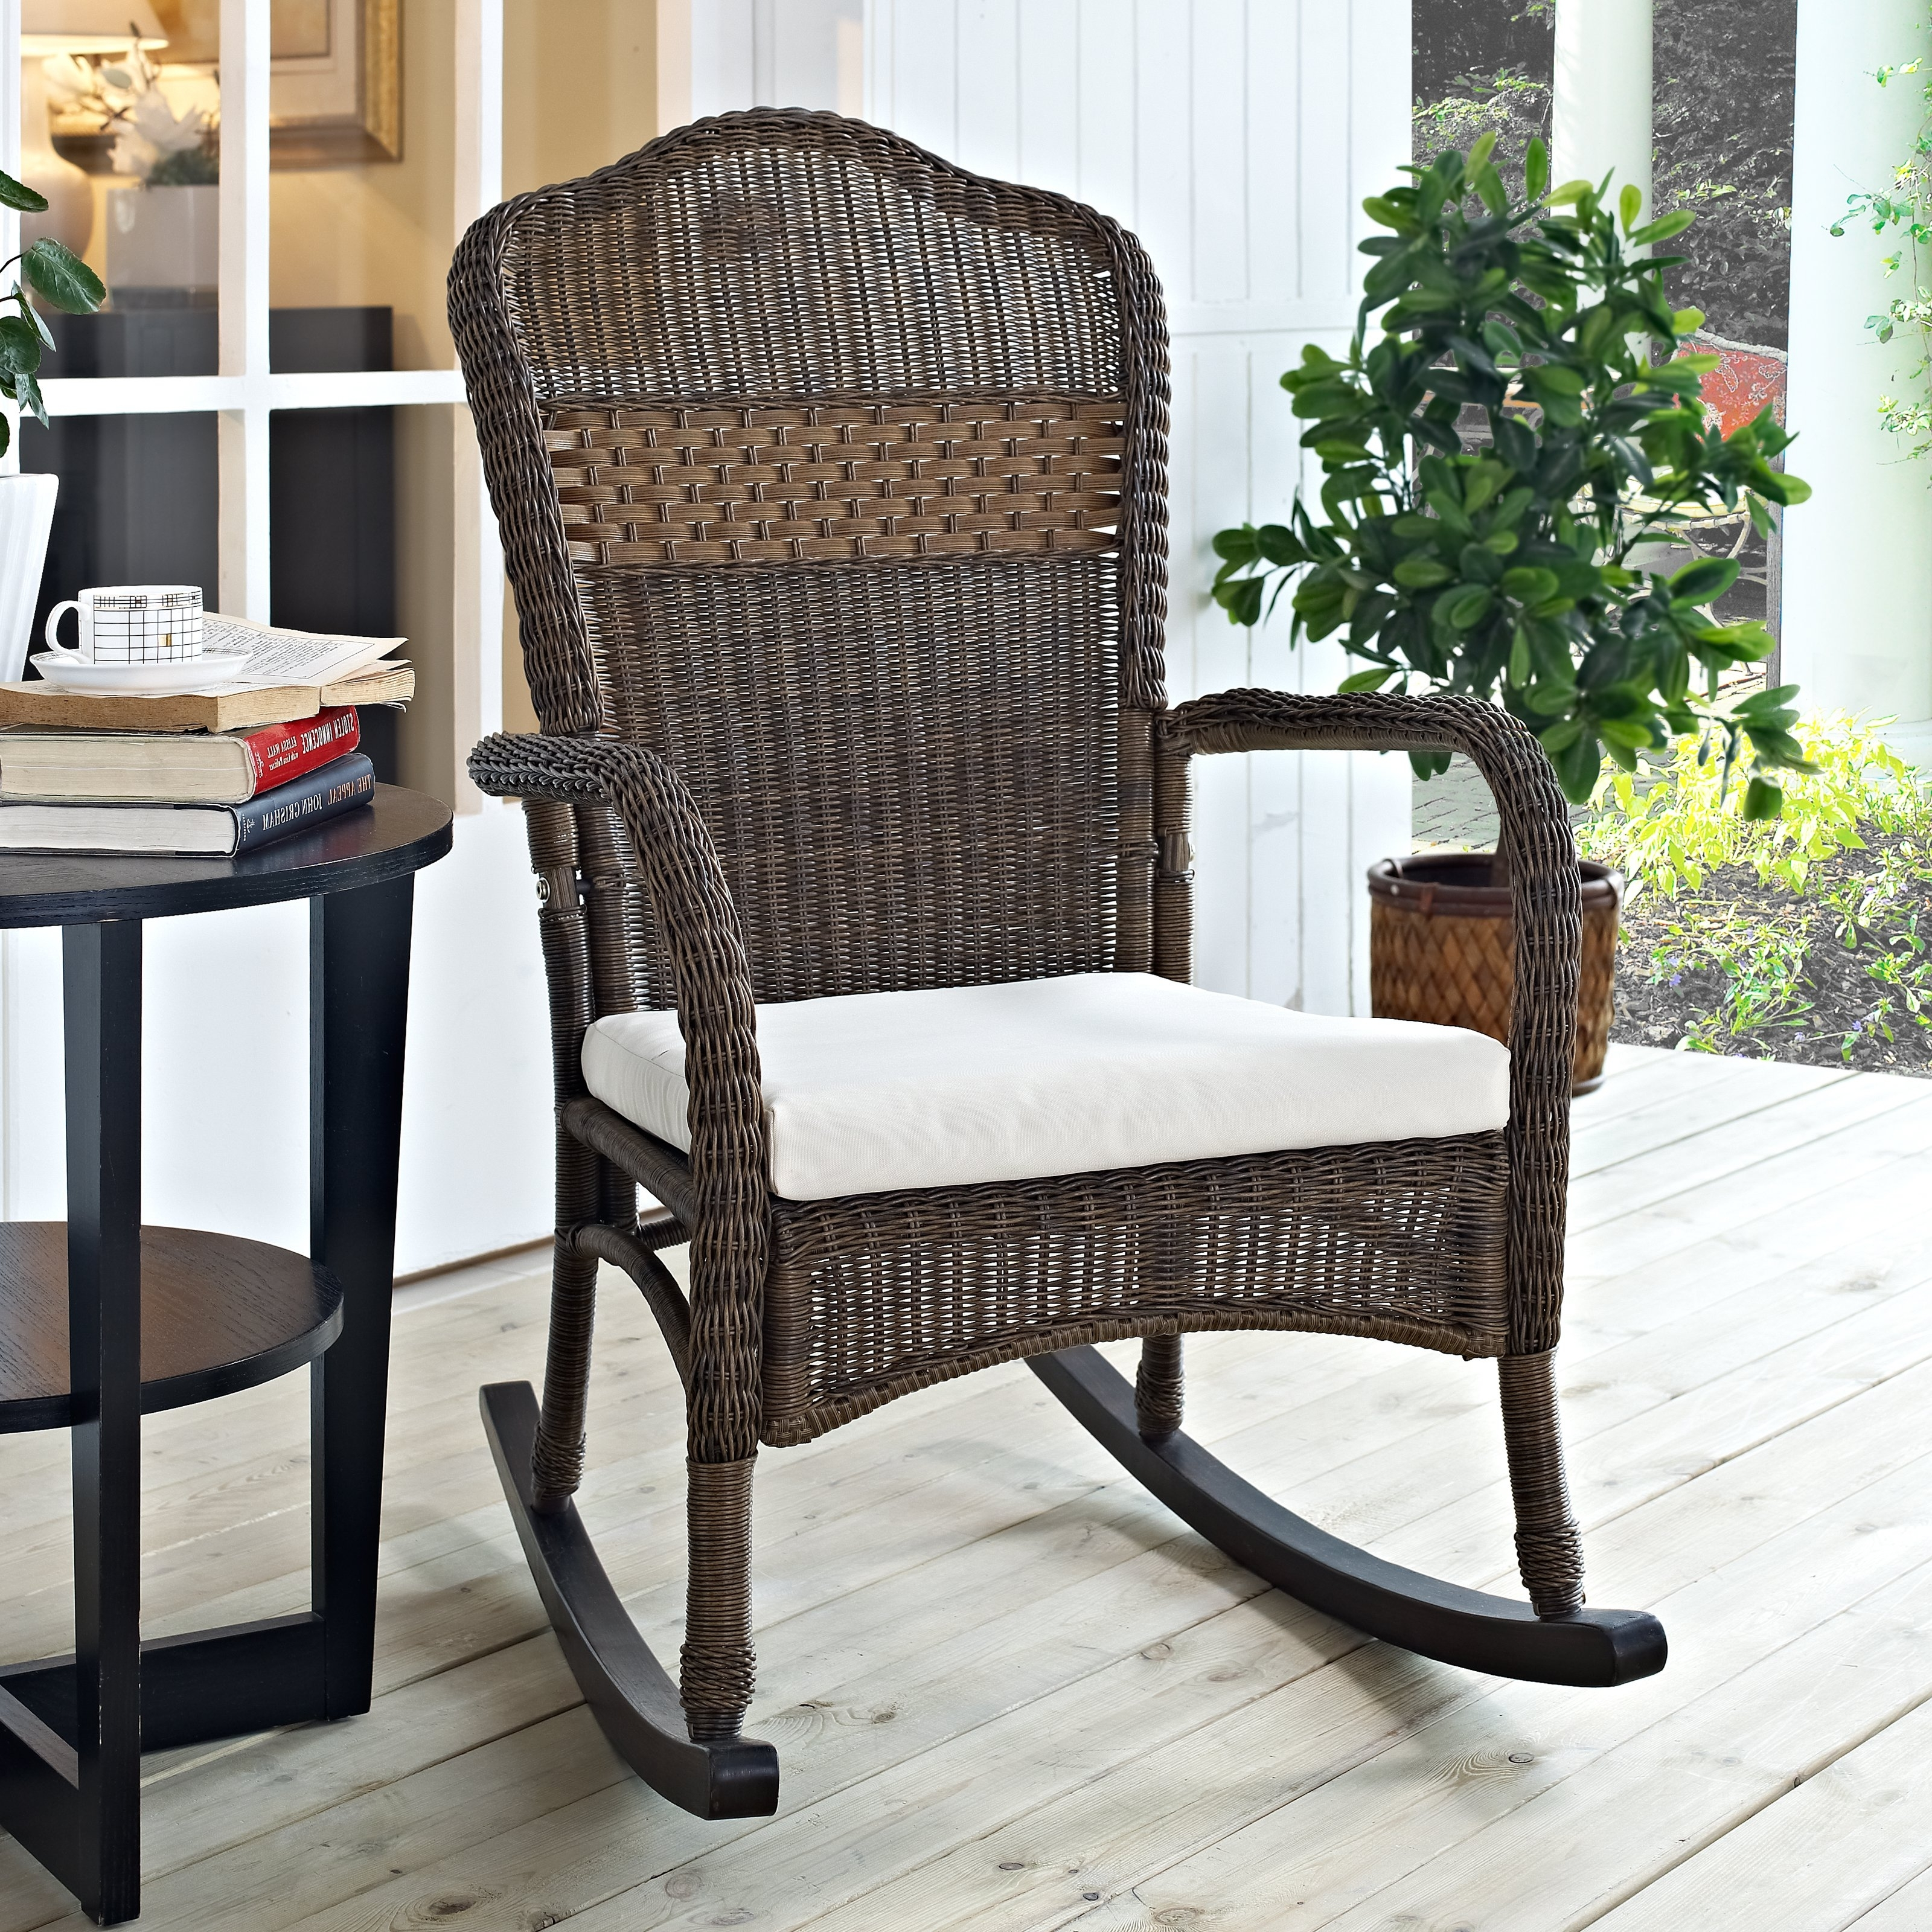 Preferred Unique Outdoor Rocking Chairs Pertaining To Coral Coast Mocha Resin Wicker Rocking Chair With Beige Cushion (View 9 of 15)